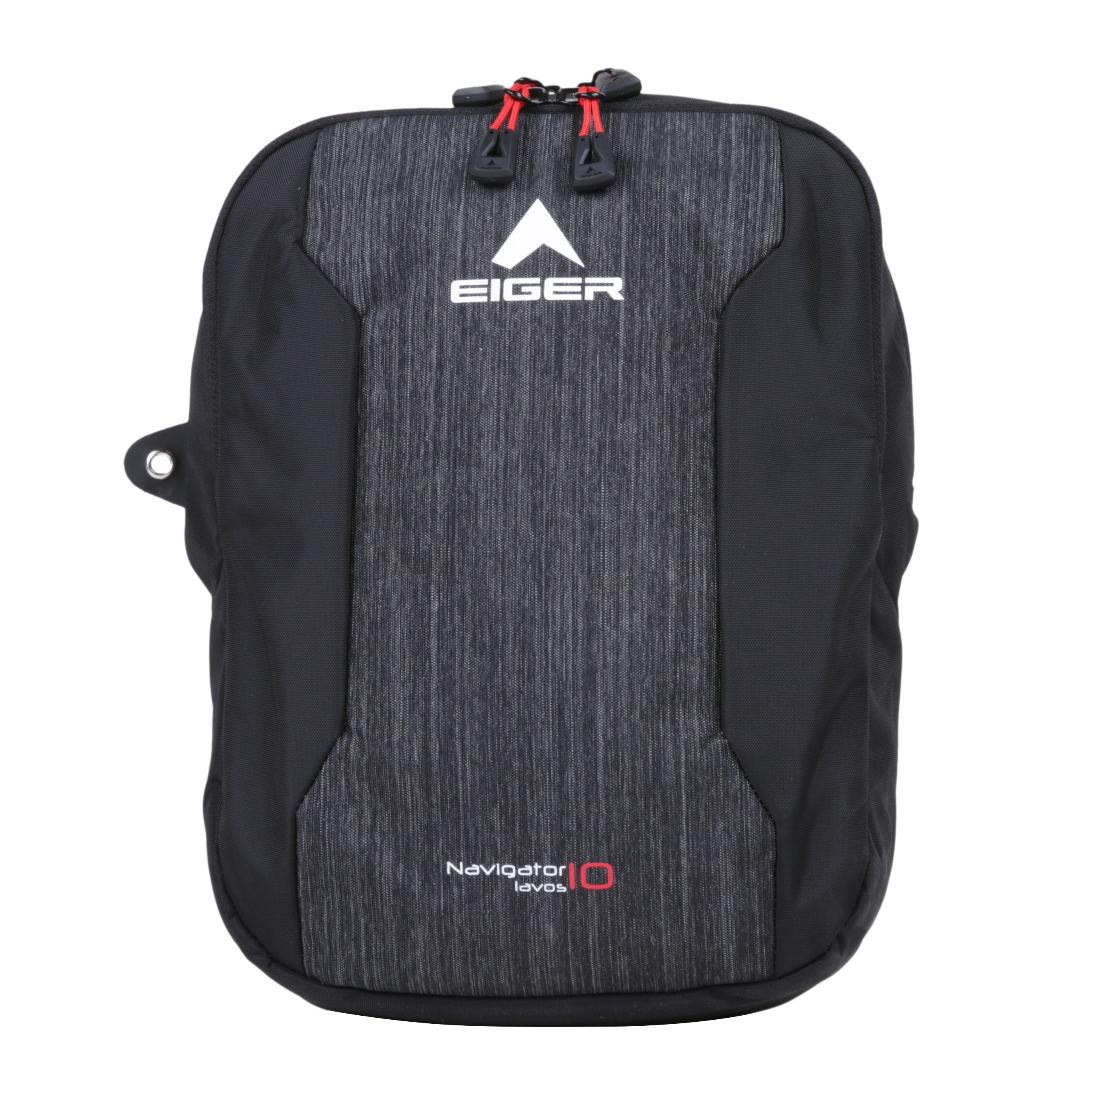 Eiger Travel Pouch Navigator Lavos 10 inch